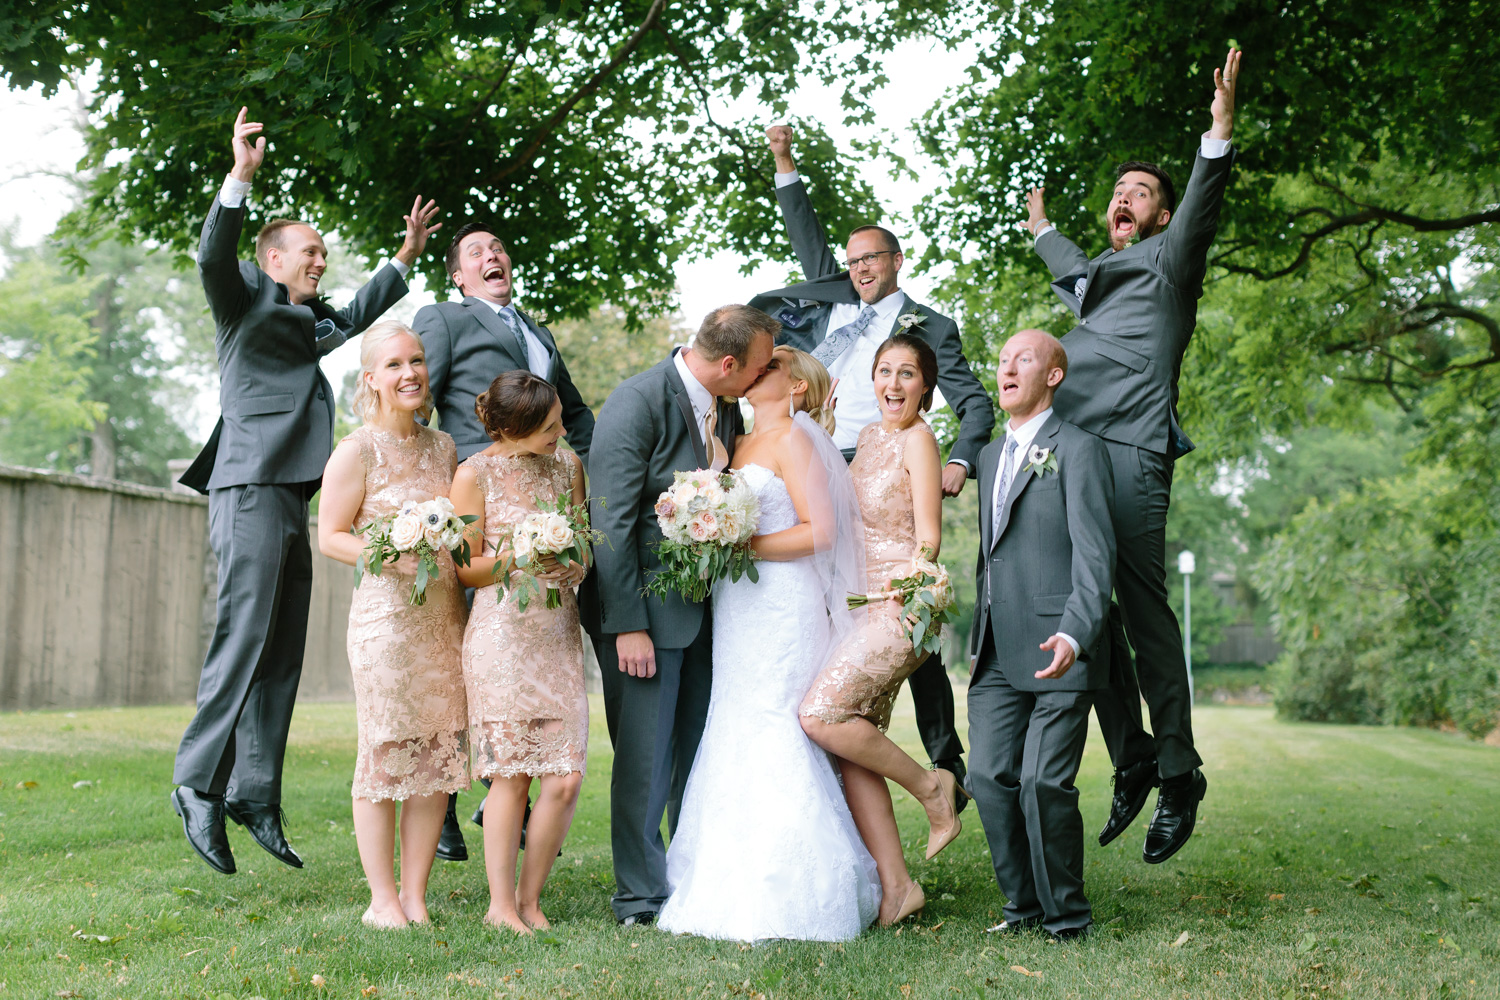 BridalPulse - Golf Lovers' Country Club Wedding - bride groom kiss with bridal party excited in background